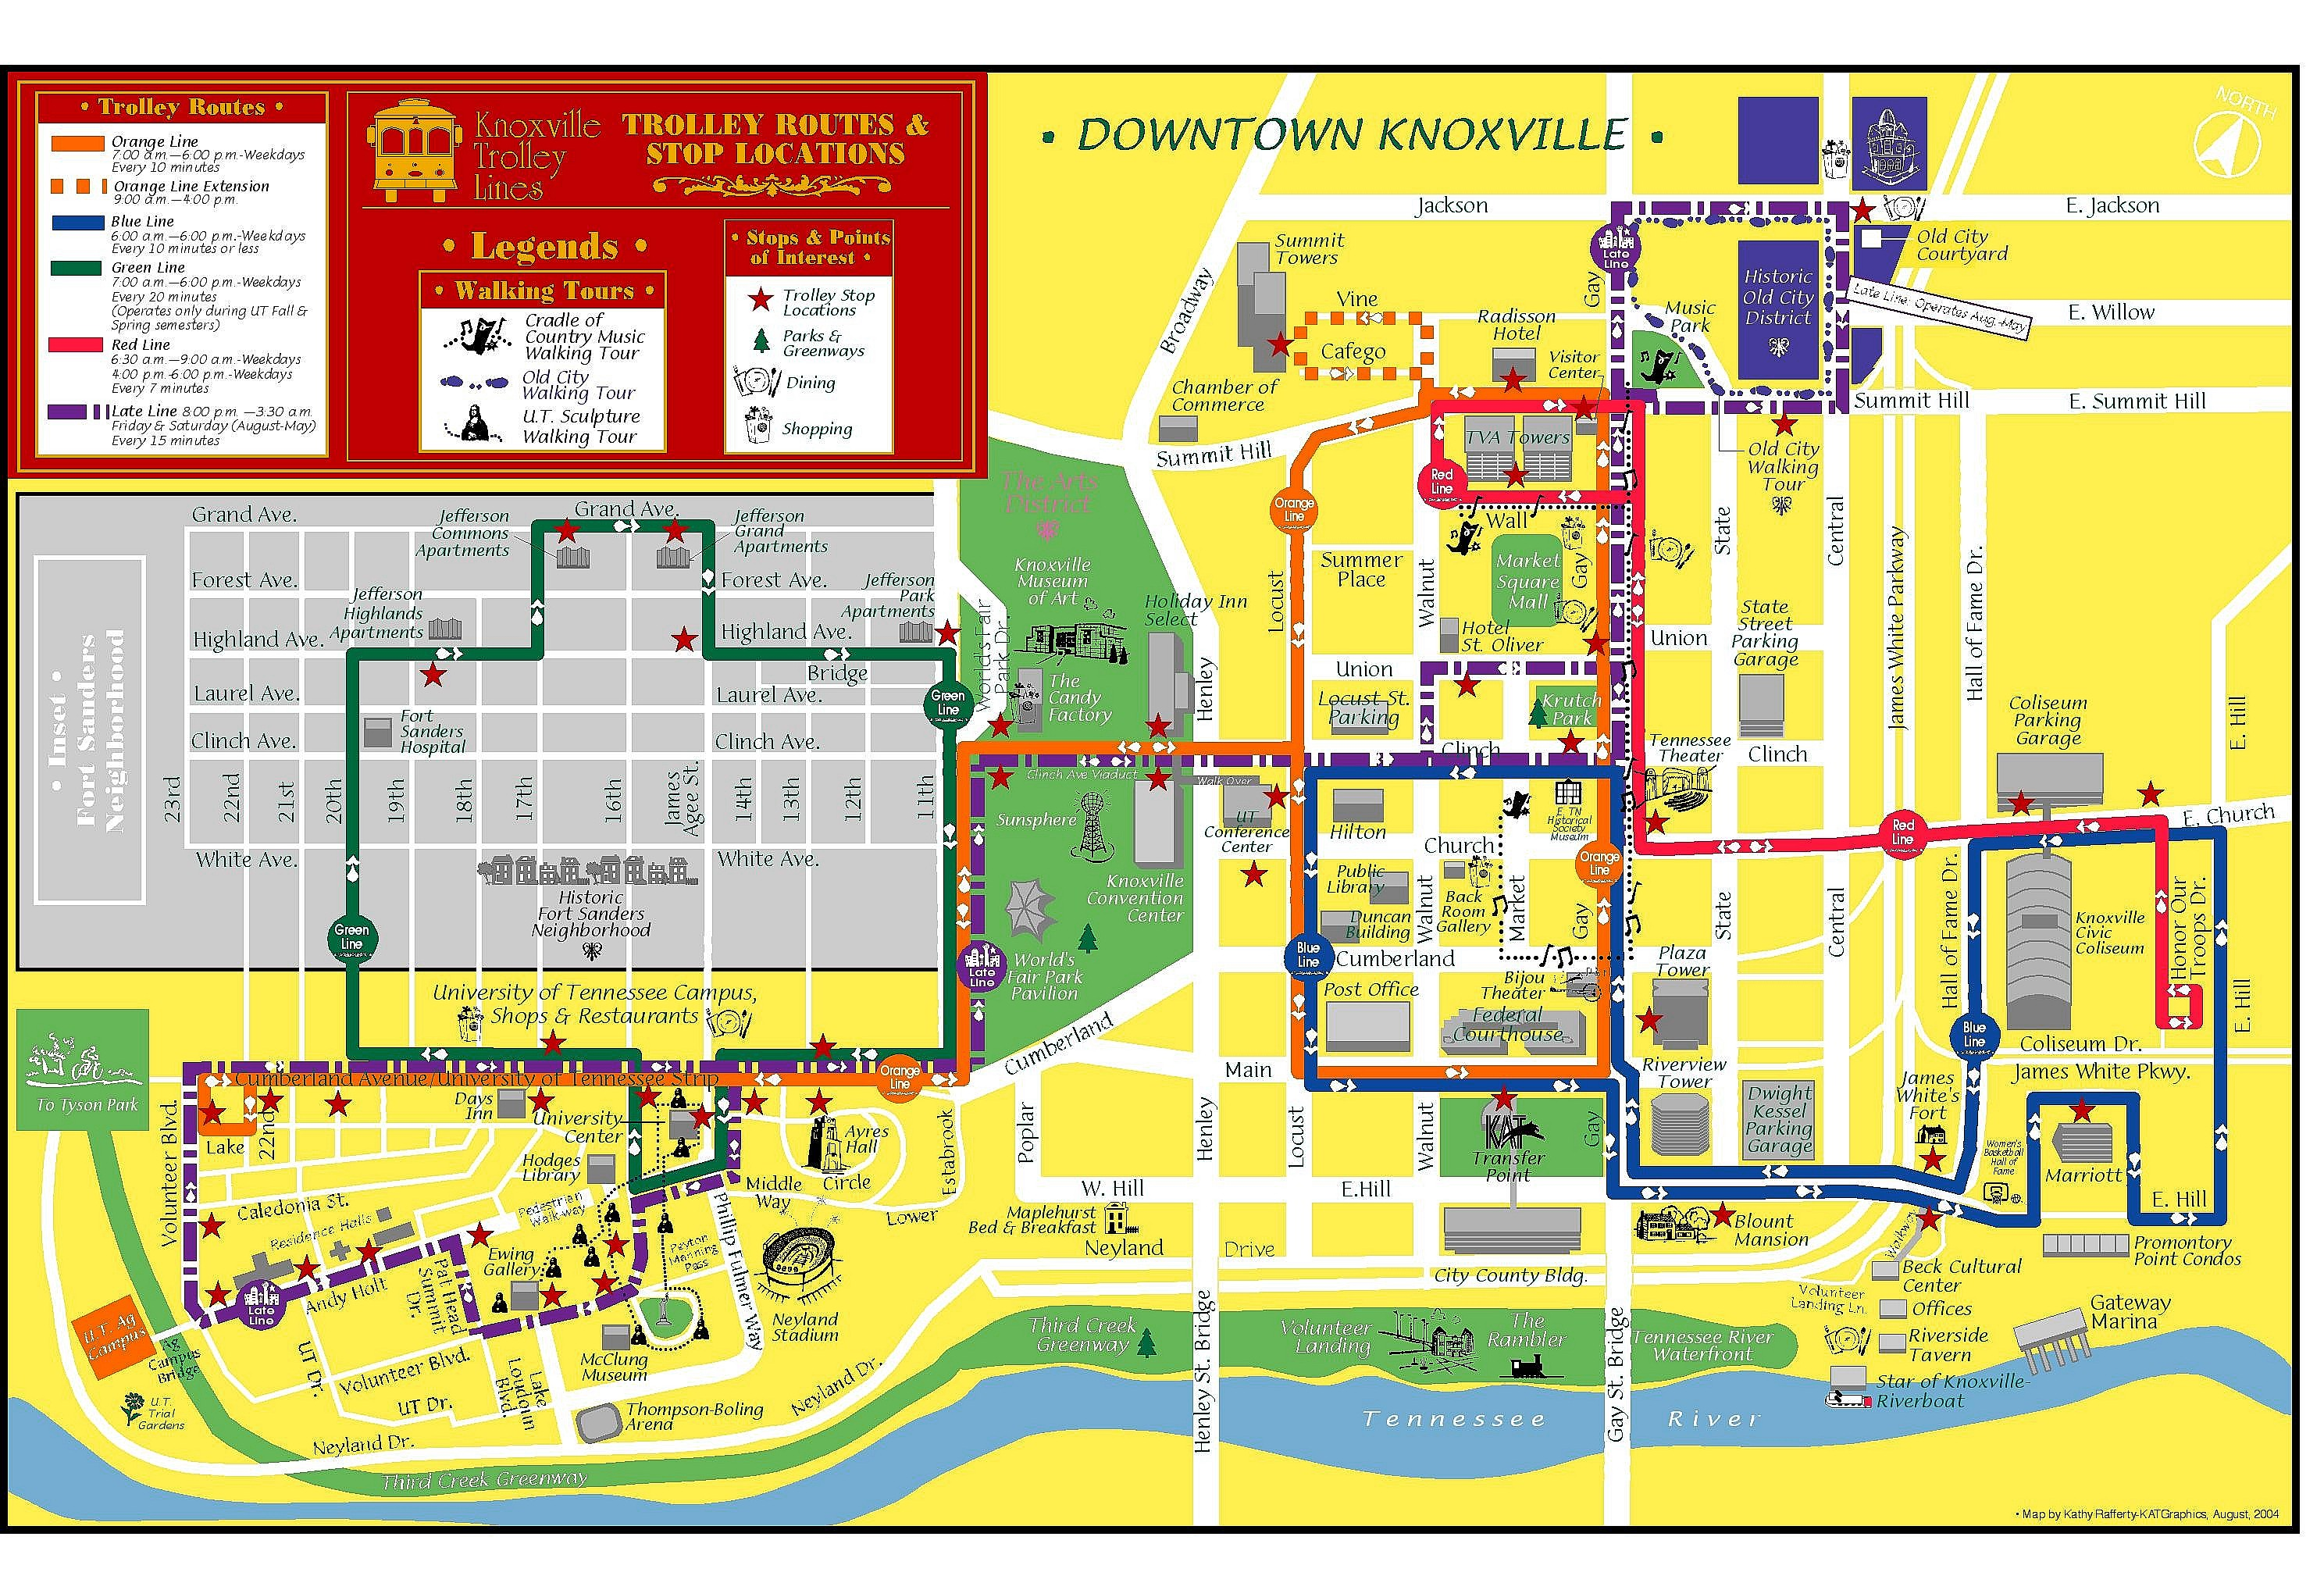 Nashville Tennessee Tourist Attractions – Nashville Tn Tourist Attractions Map